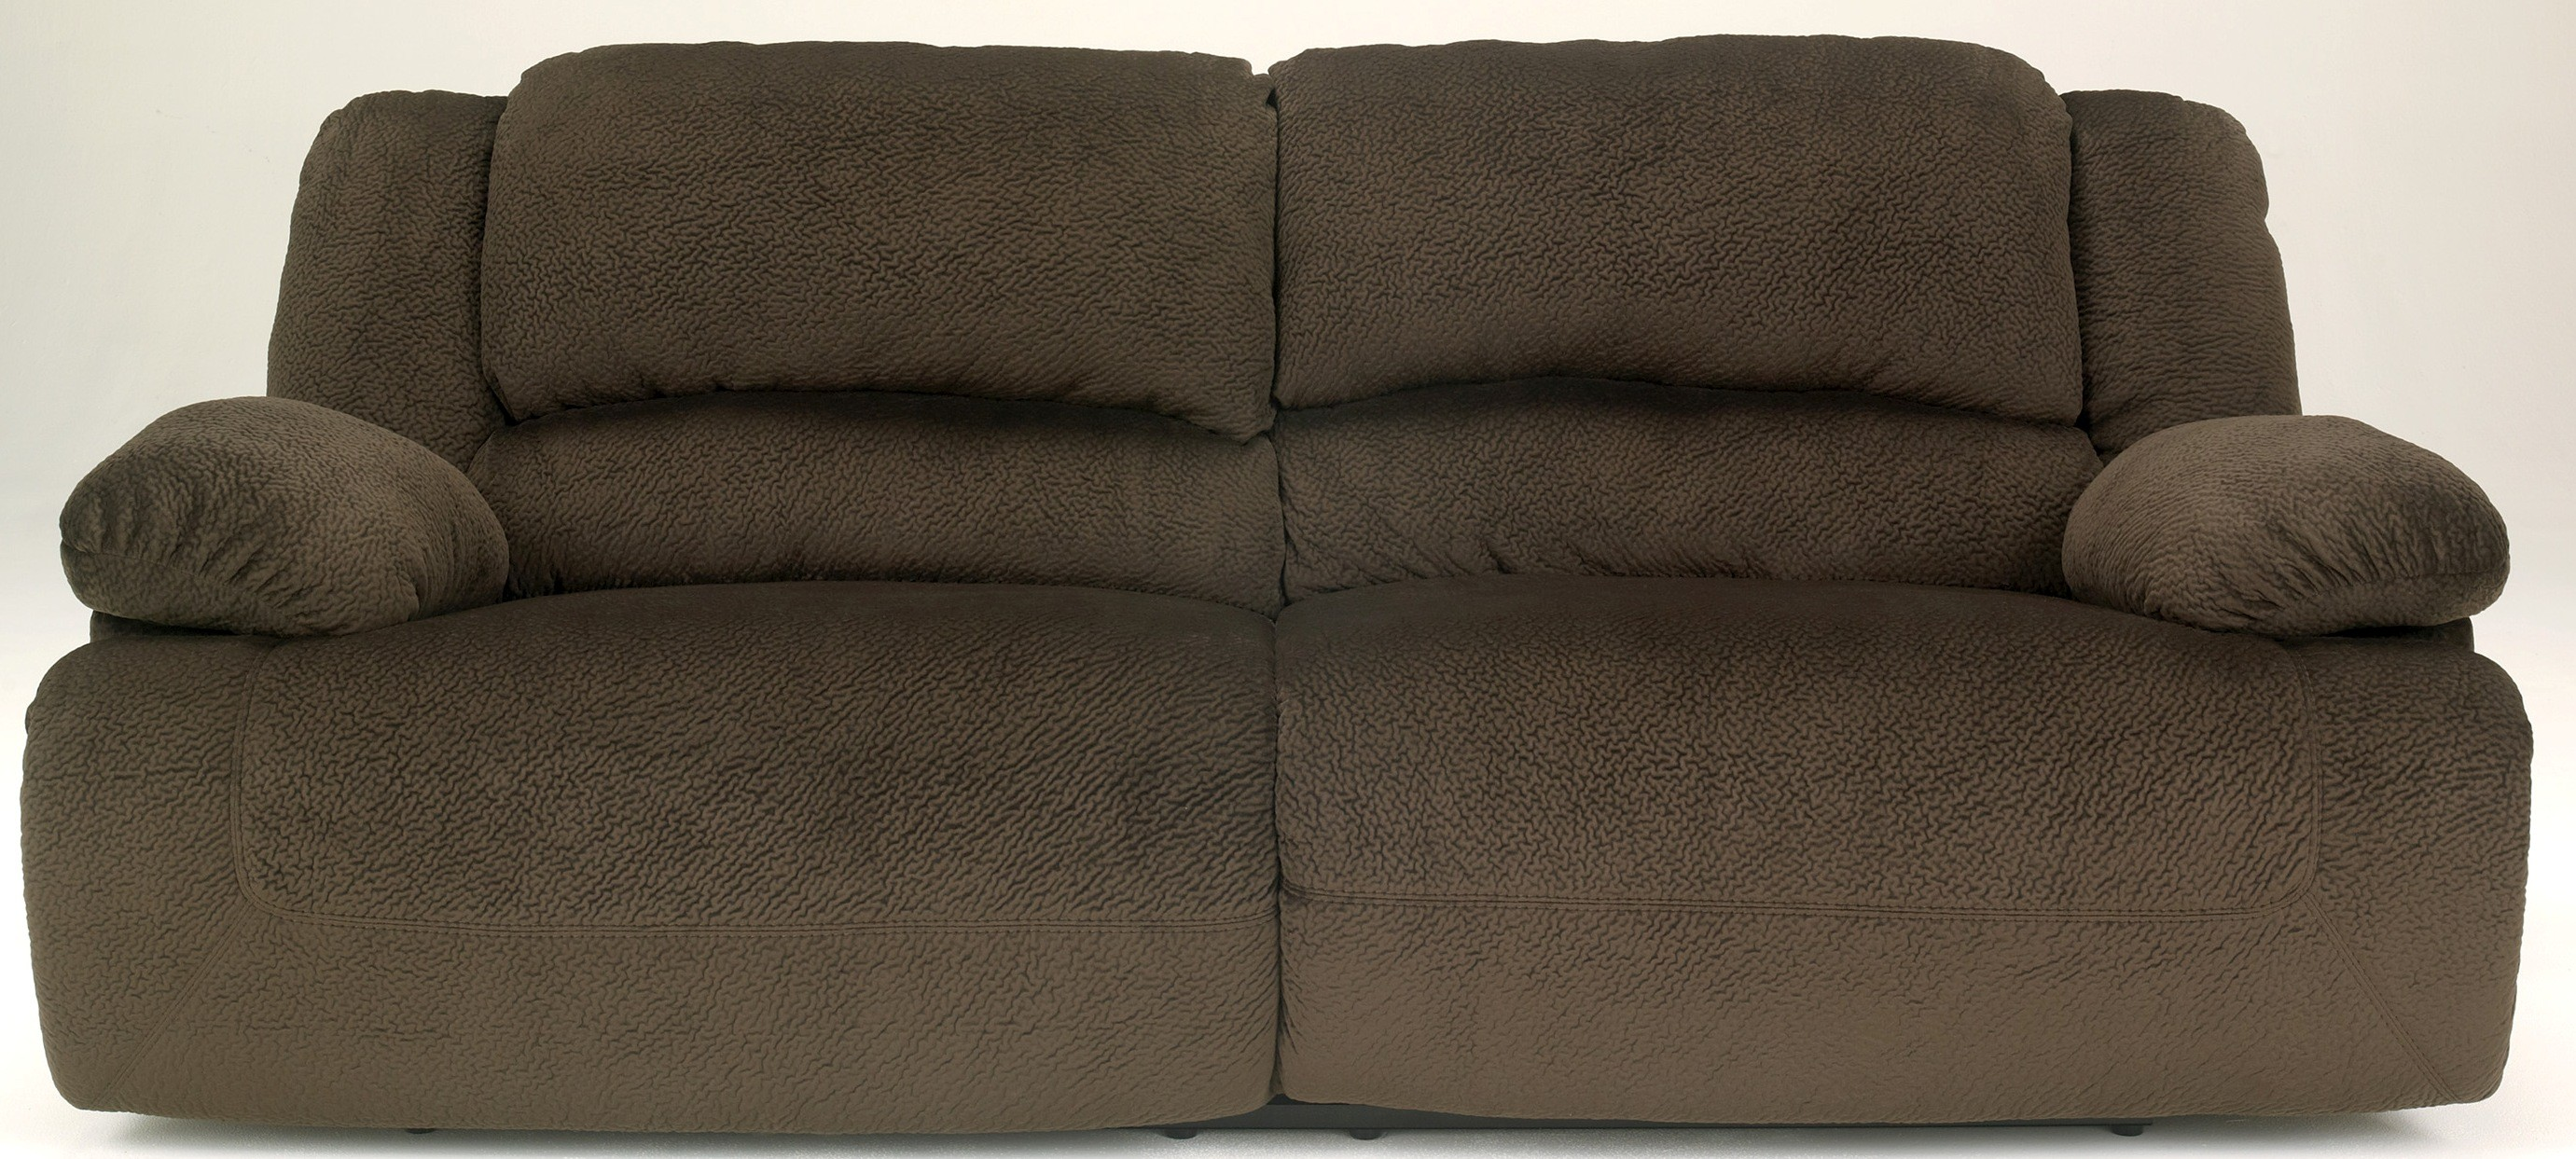 Toletta Chocolate 2 Seat Reclining Sofa From Ashley